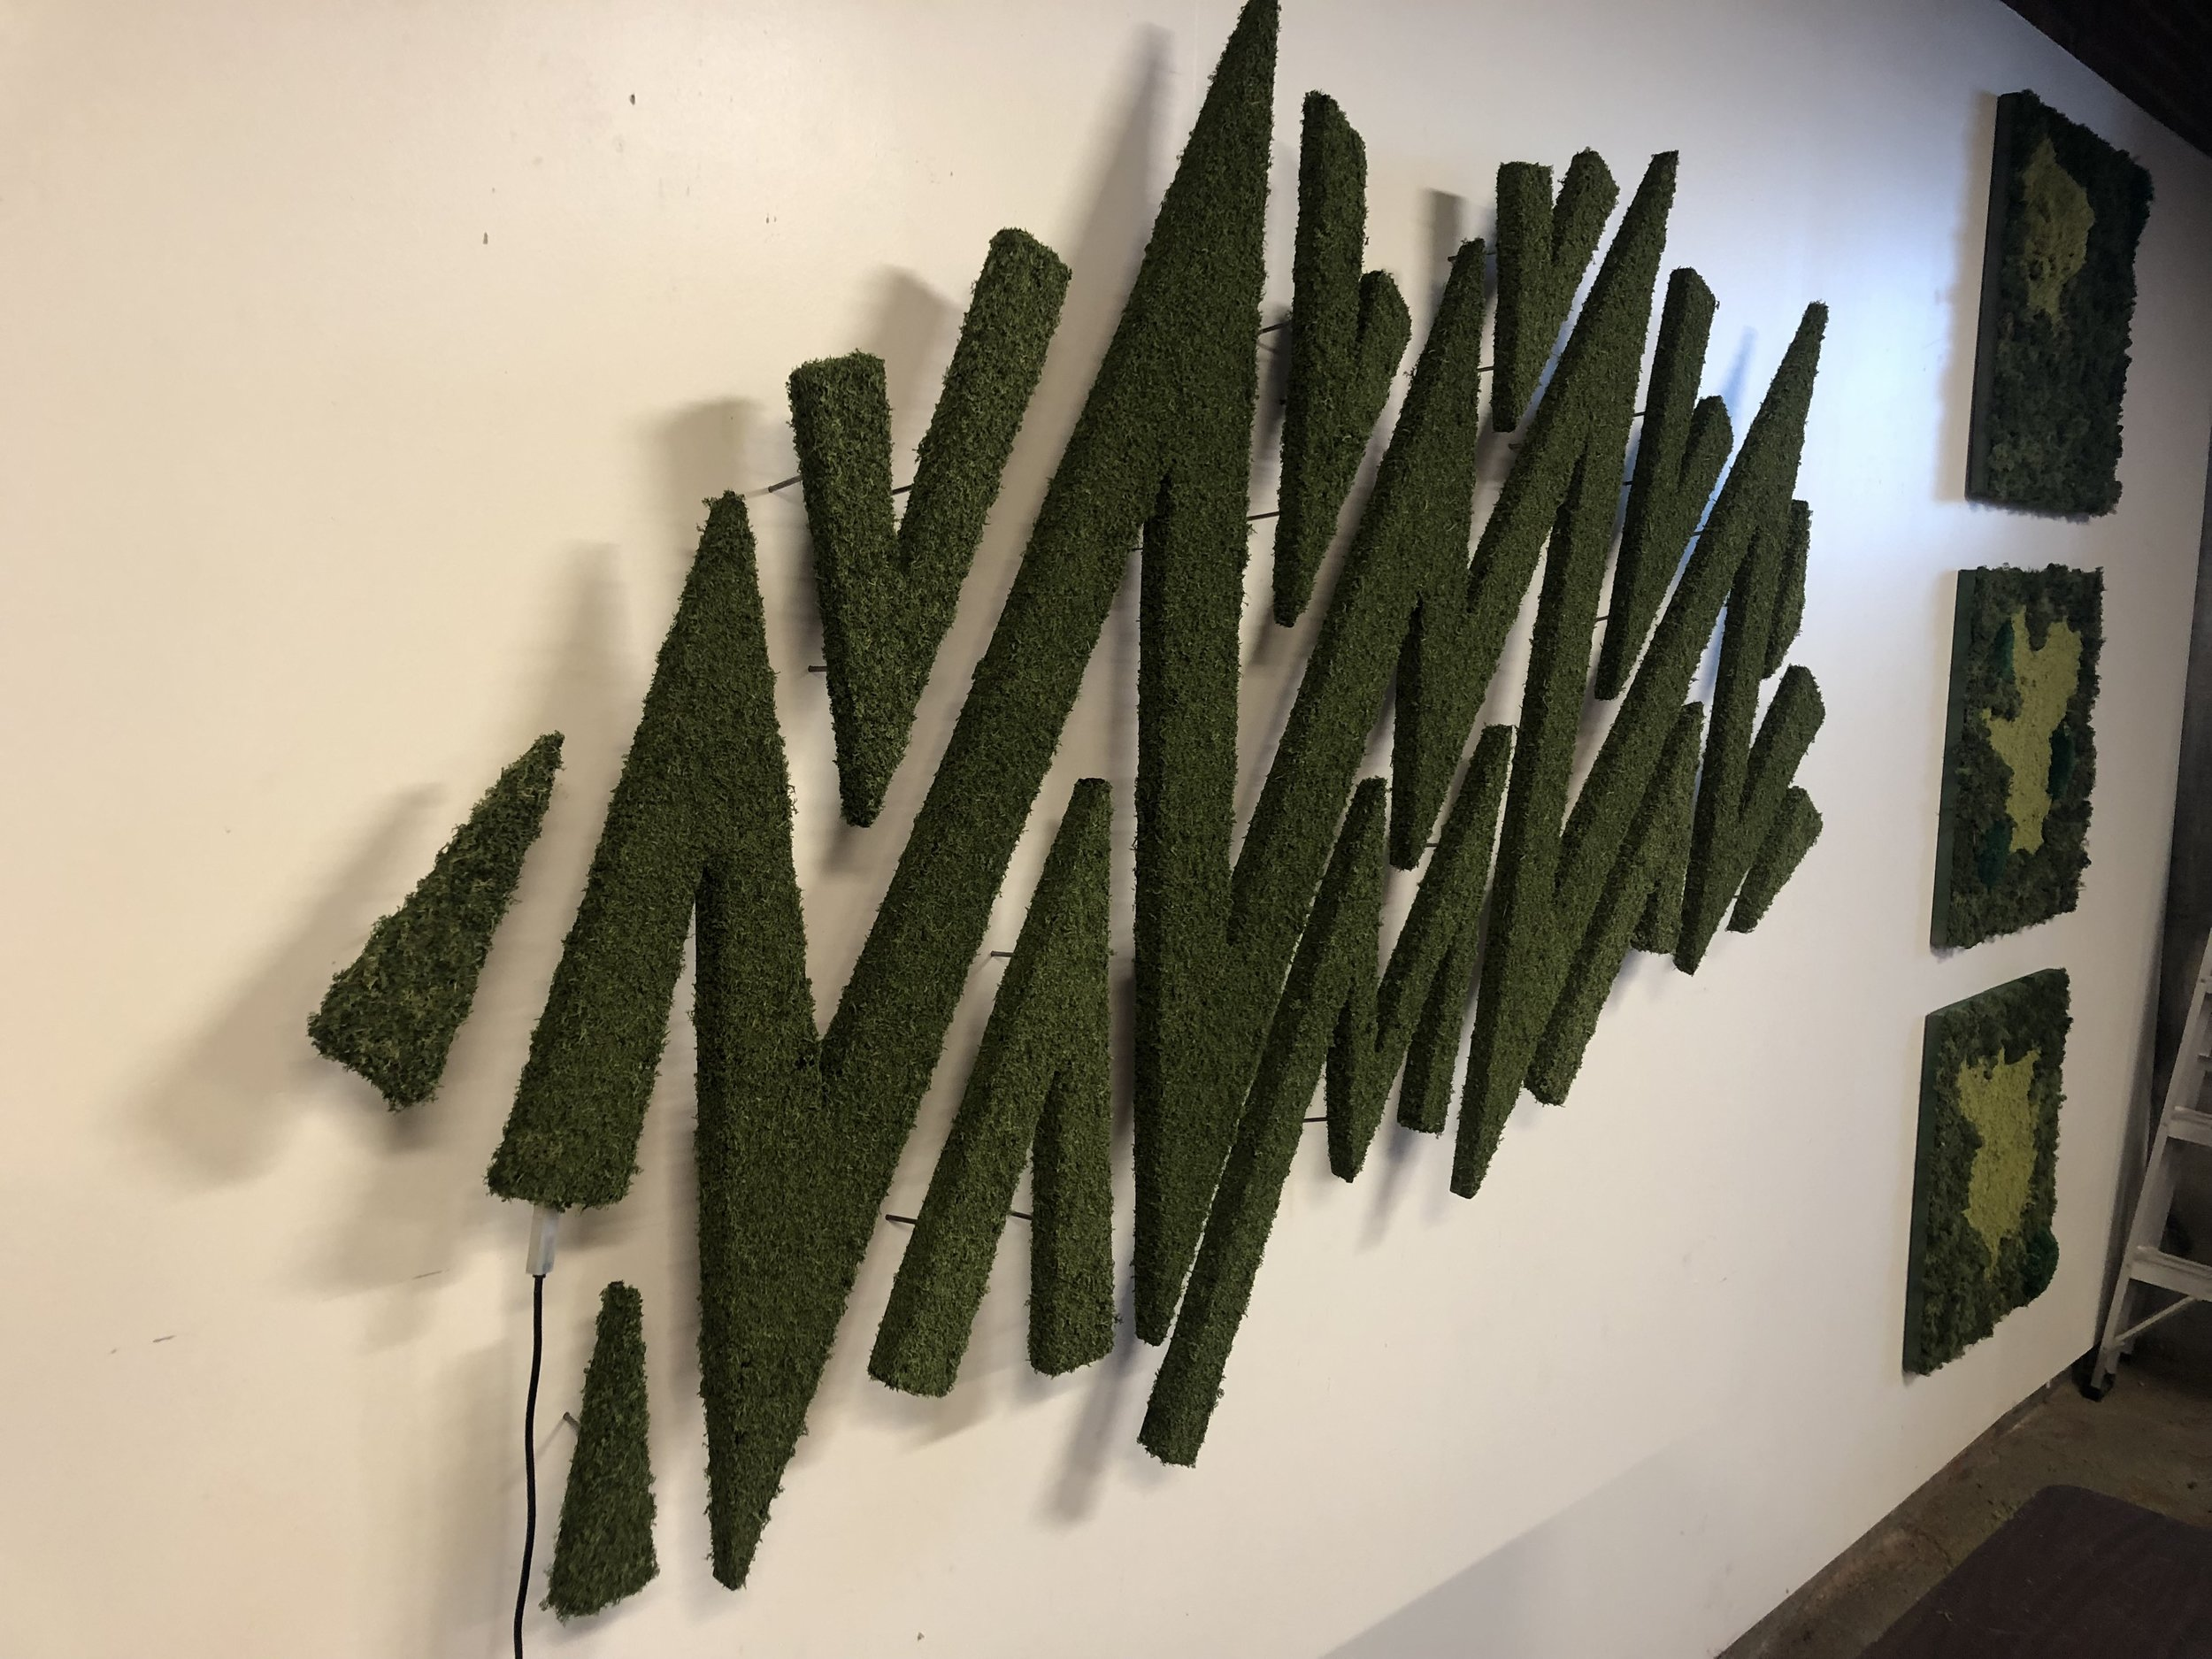 Custom moss artwork on display at the Urban Planting Cleveland studio shop. Fun fact: it lights up in many different ways!